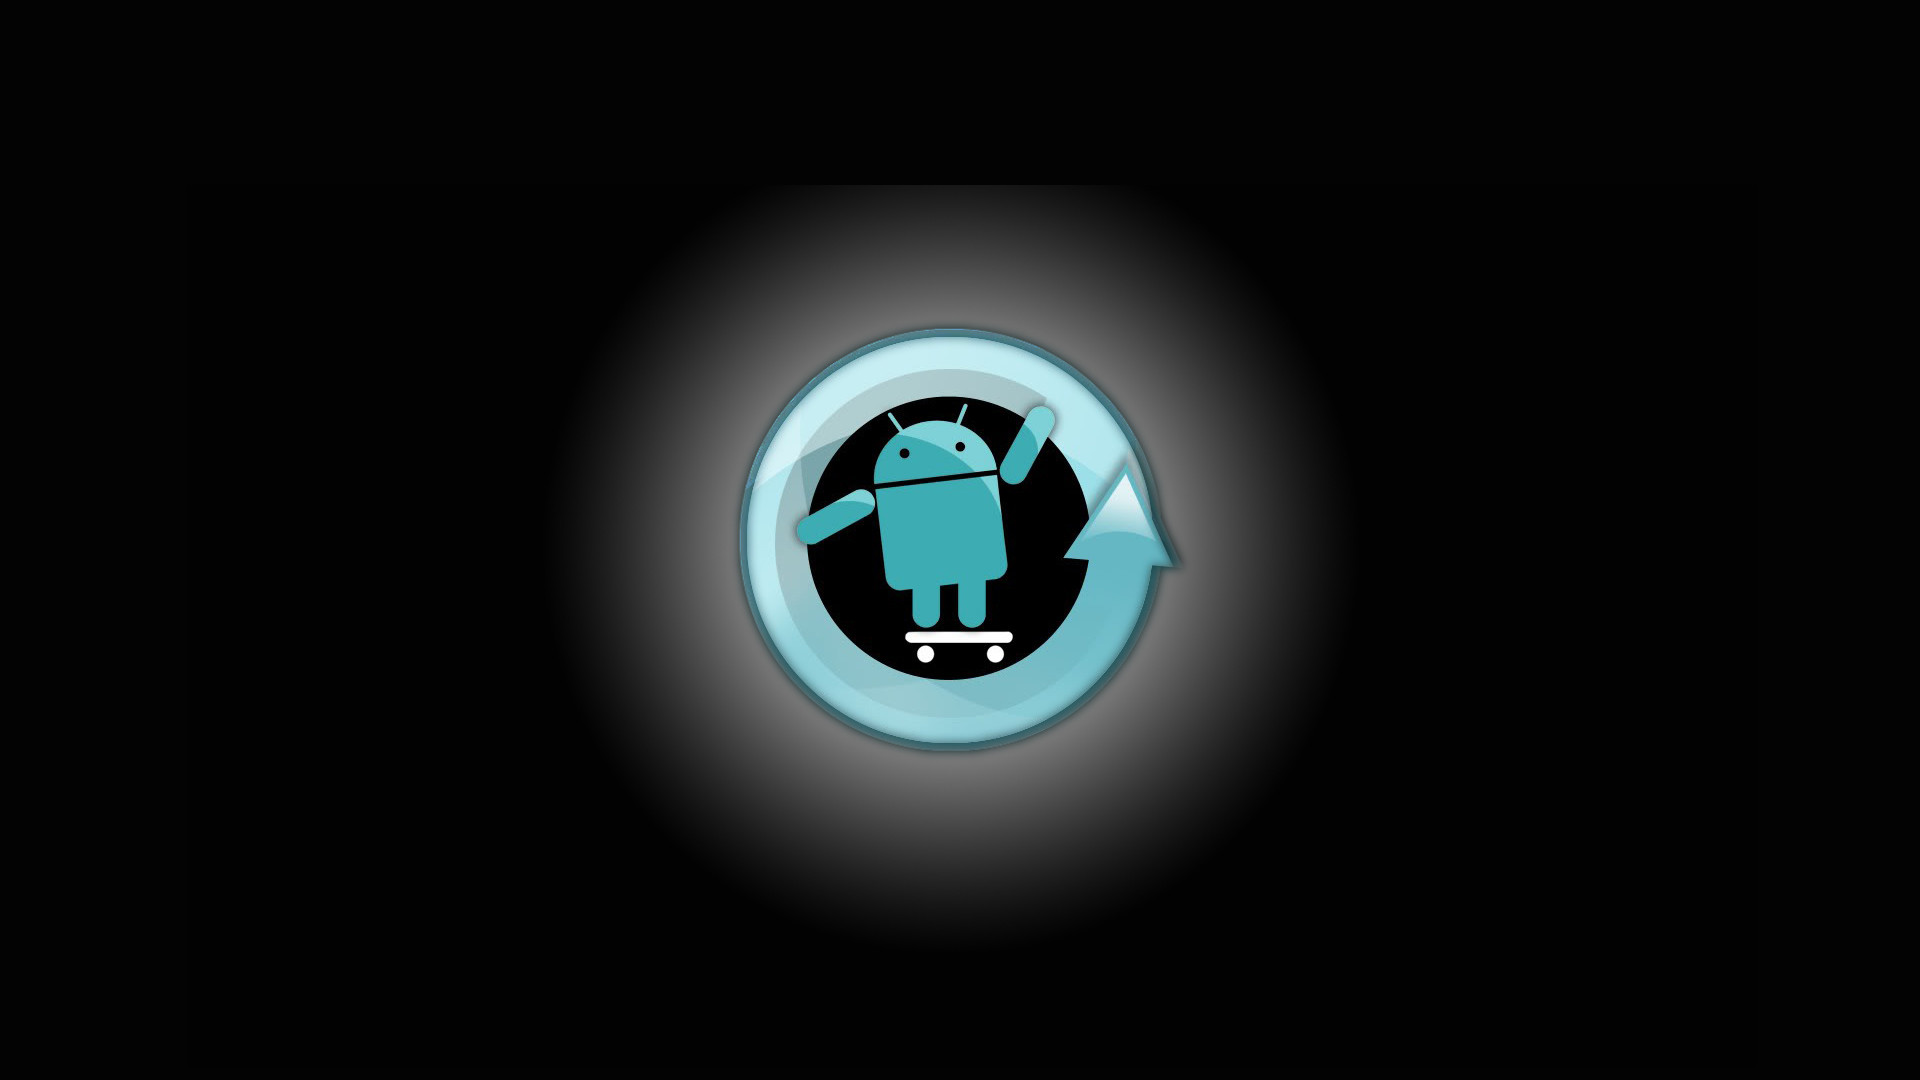 Wallpaper cyanogenmod, firmware, os, android, linux